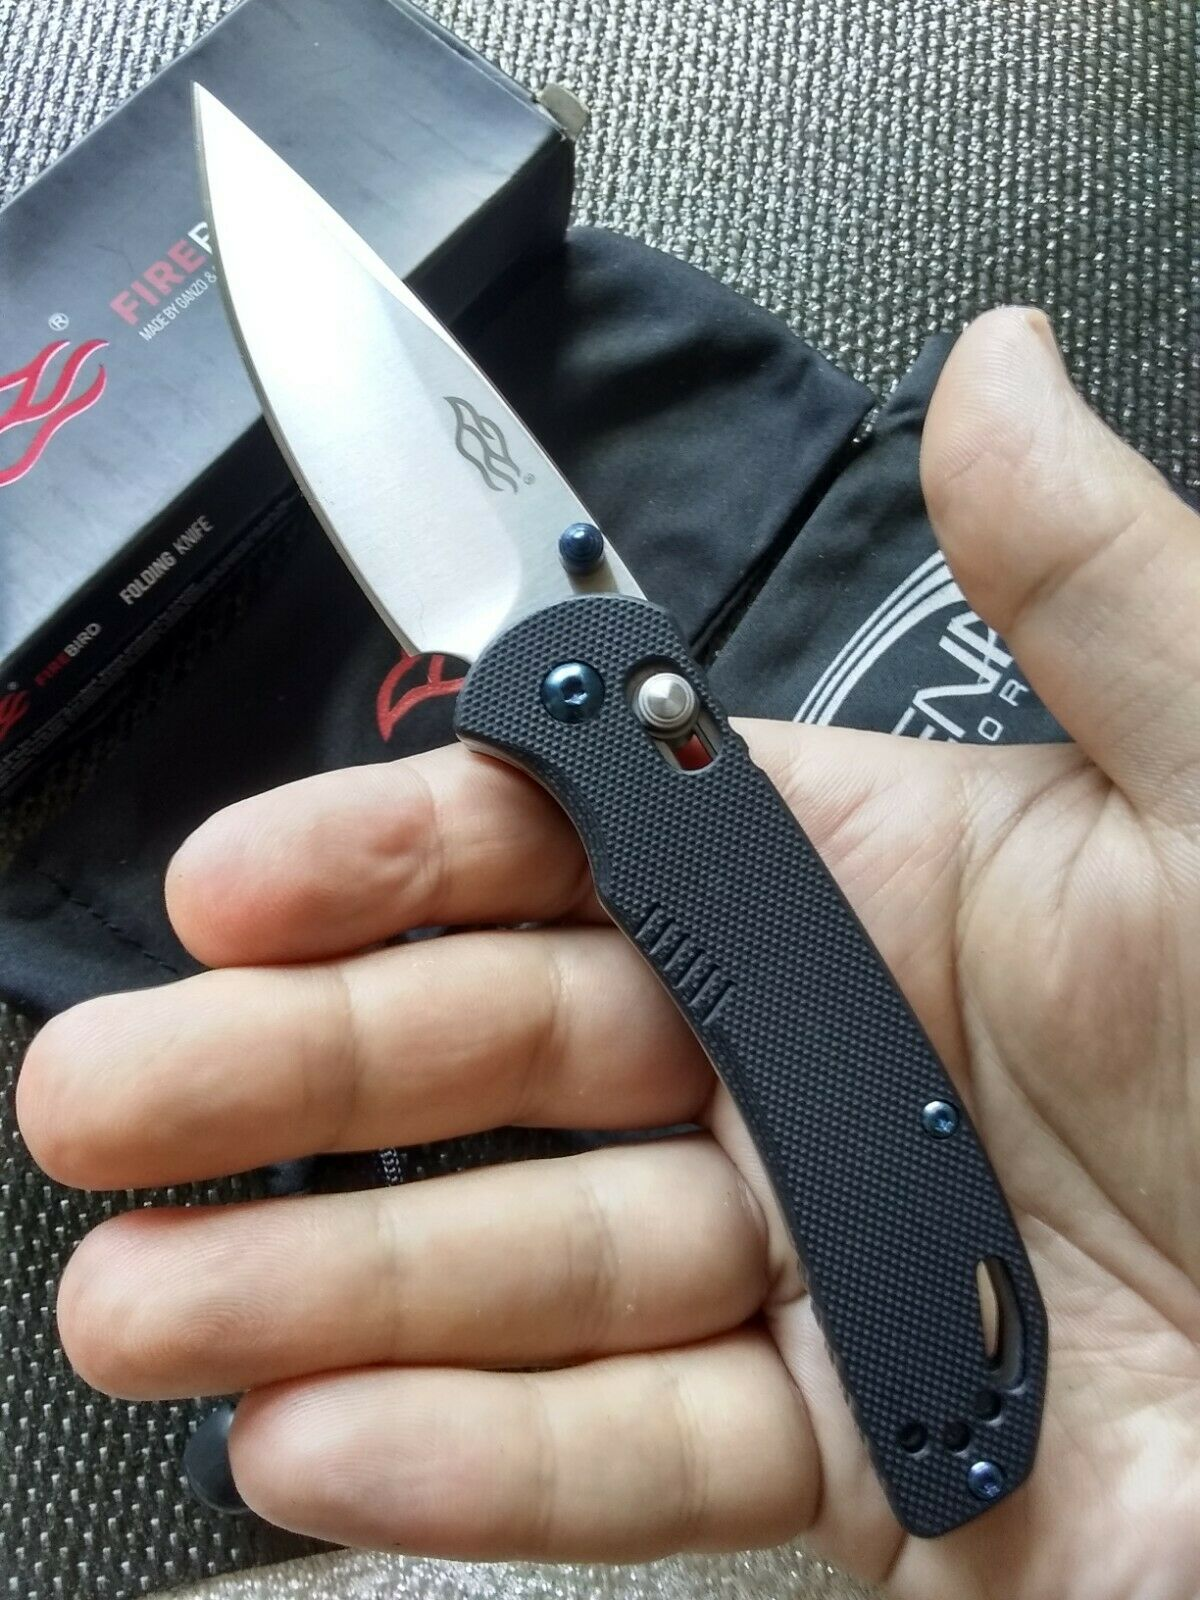 GANZO Firebird F753M1-BK Pocket Knife Black G10 Scale Axis Lock Blue Screws 440C